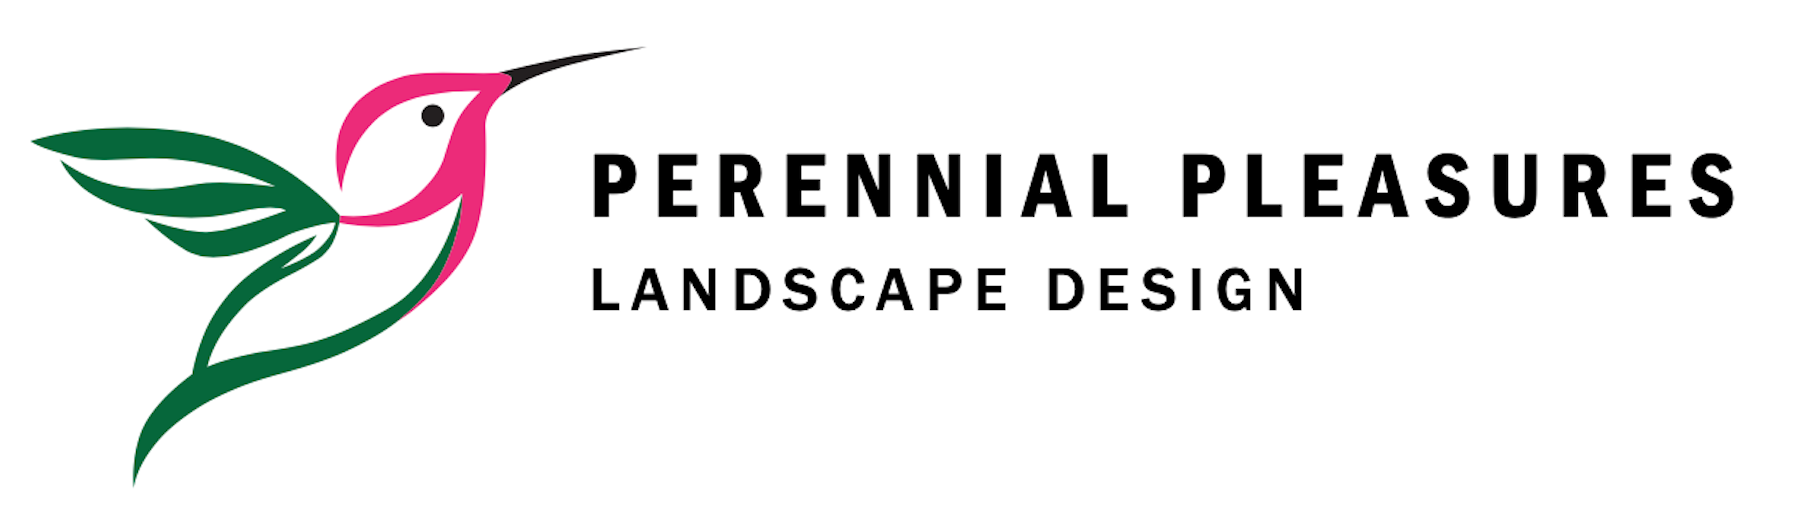 Perennial Pleasures Landscape Design